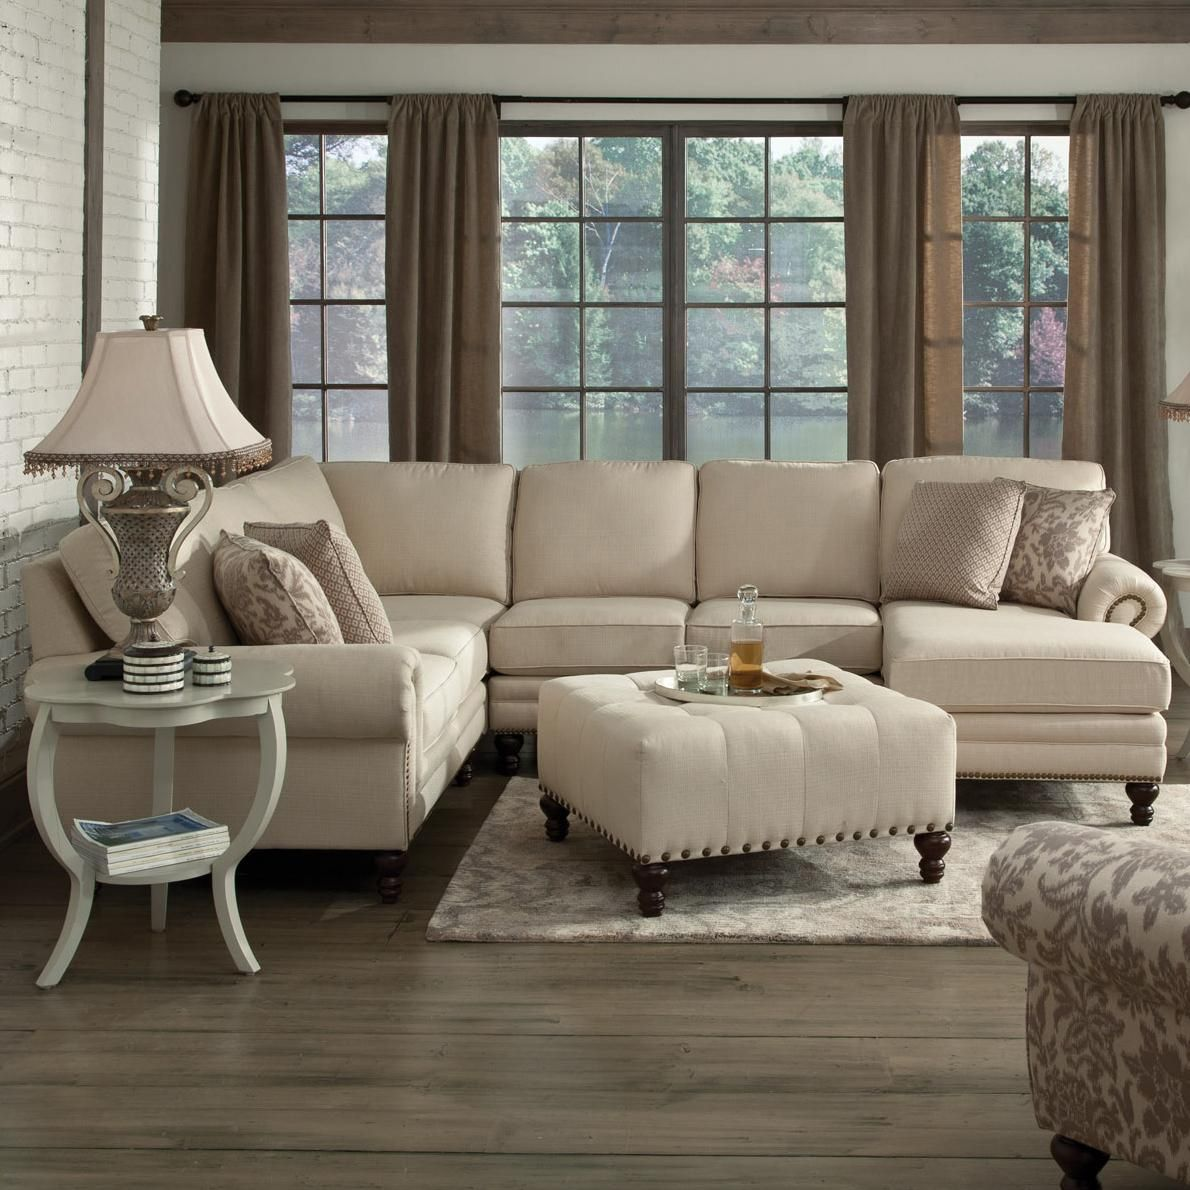 Amix Six Seat Sectional With Right Chaise By England 2600